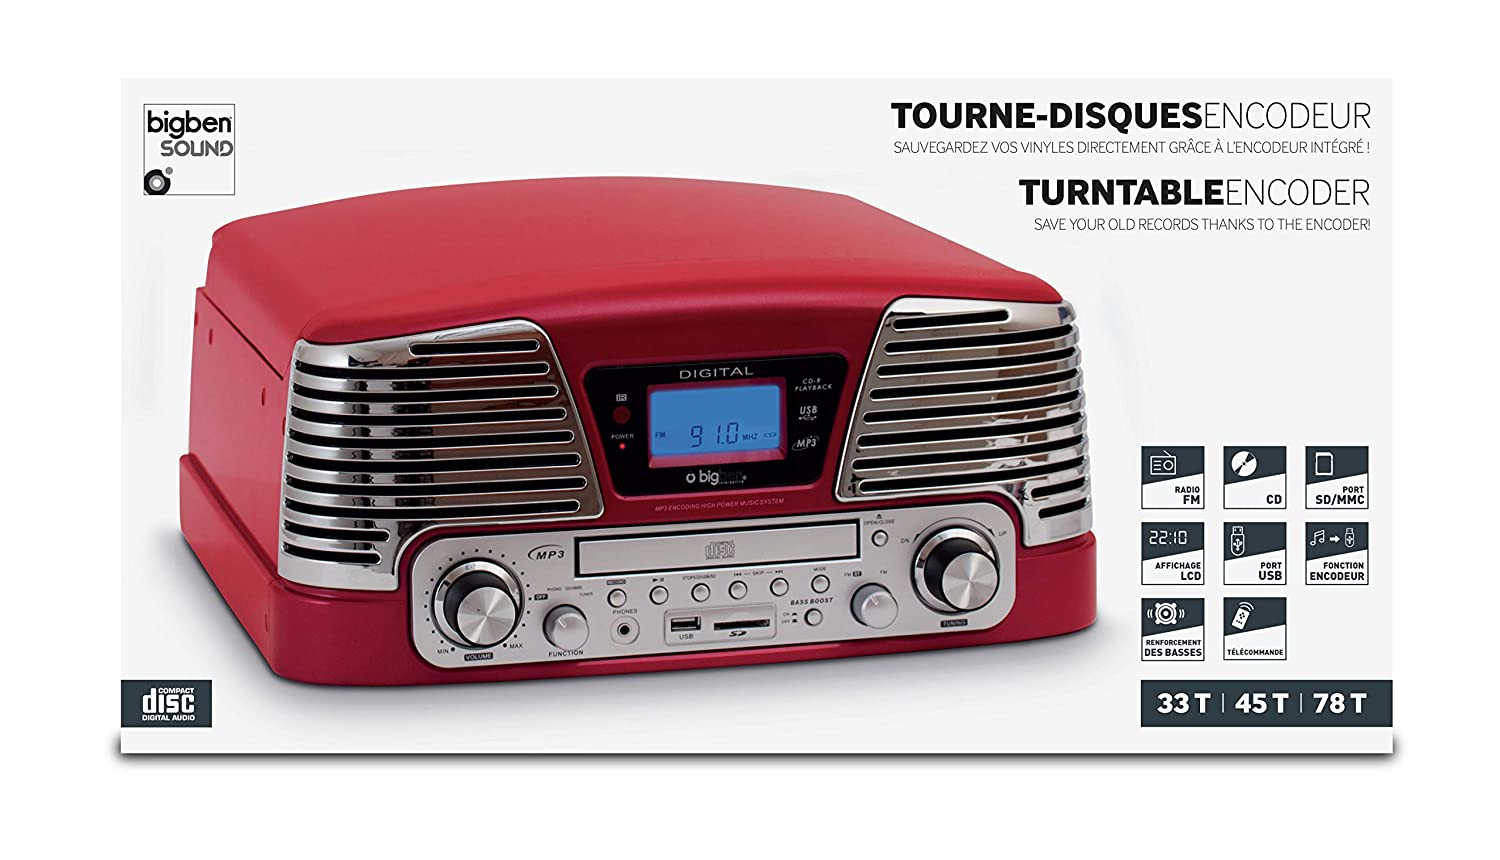 BigBen TD79 II - Tocadiscos para equipo de audio (LCD, USB, 3.5 mm), color rojo: Amazon.es: Electrónica